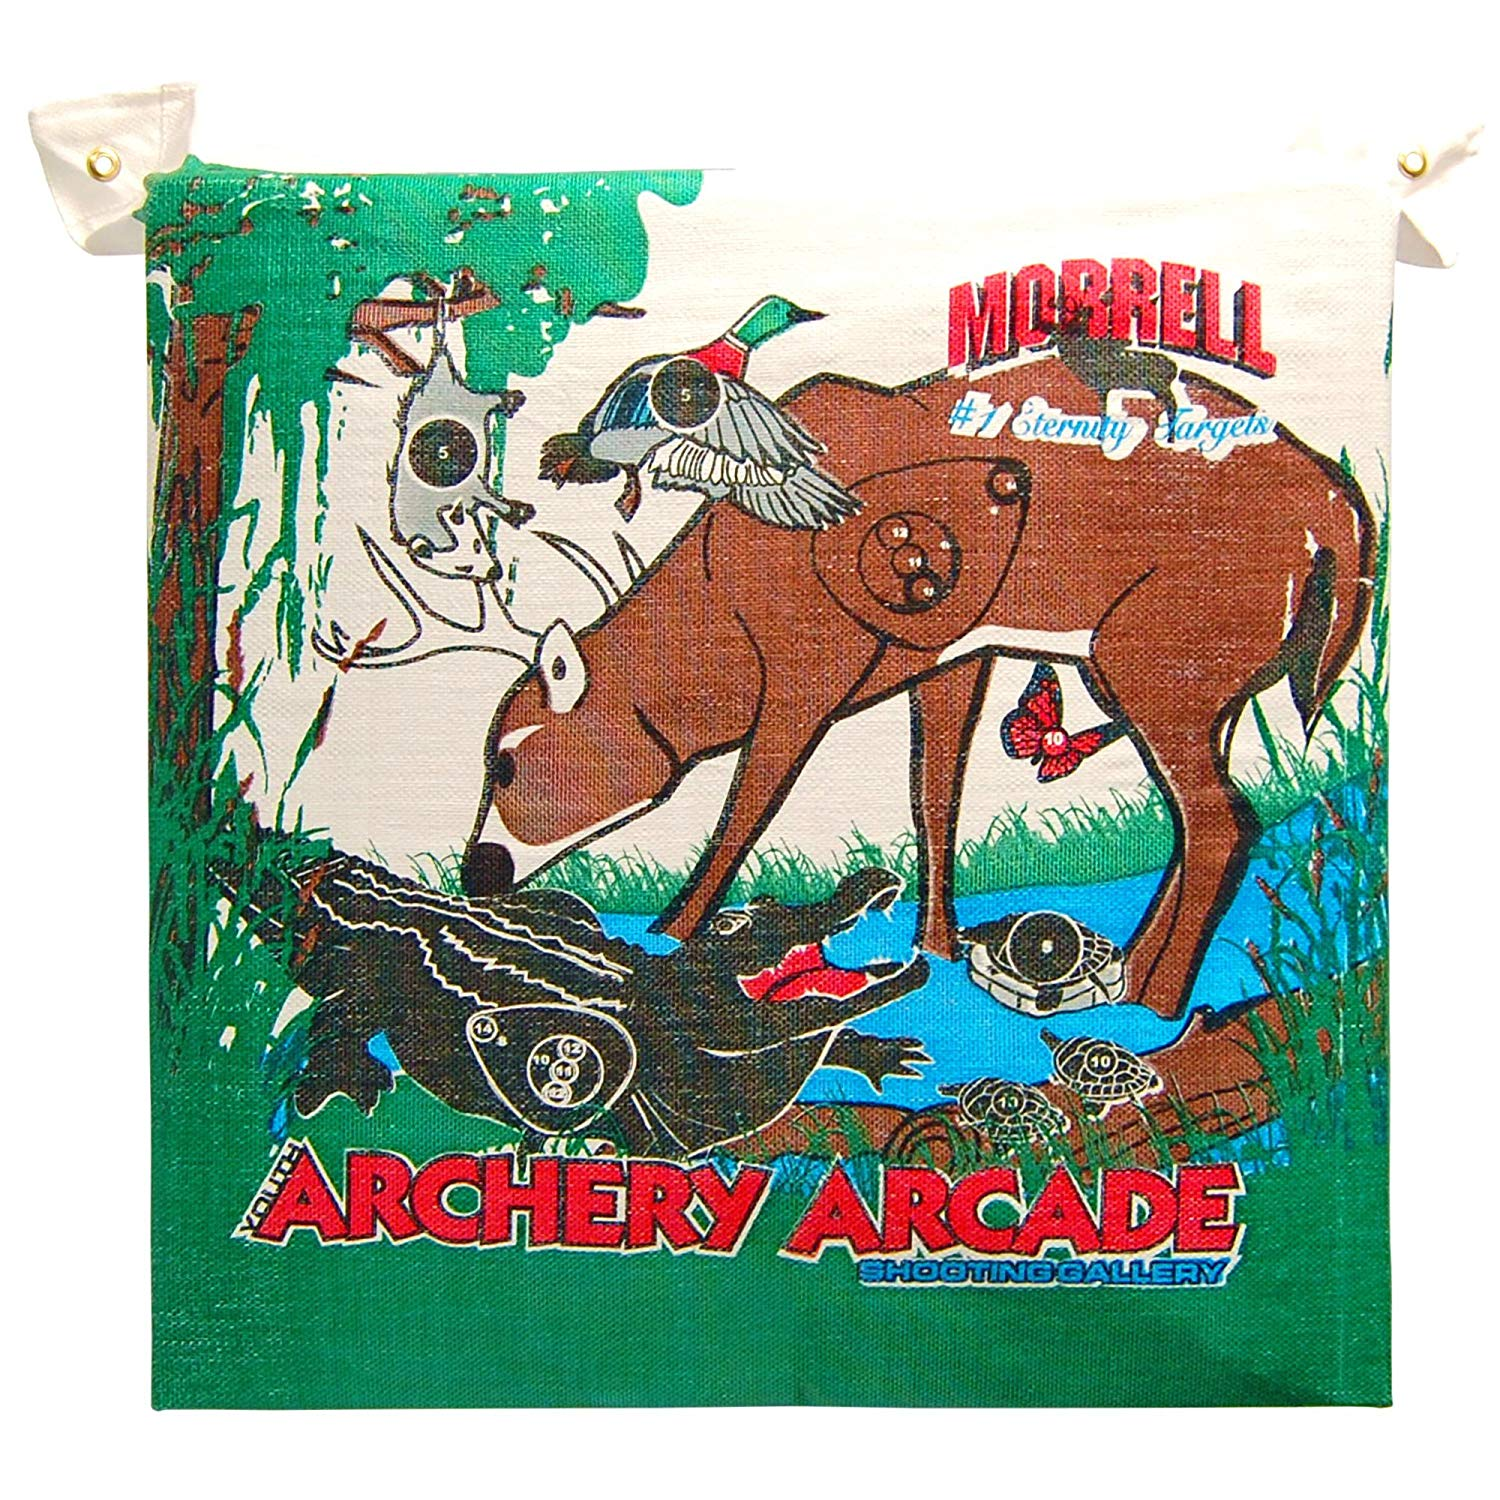 Morrell Youth Arcade Archery Target